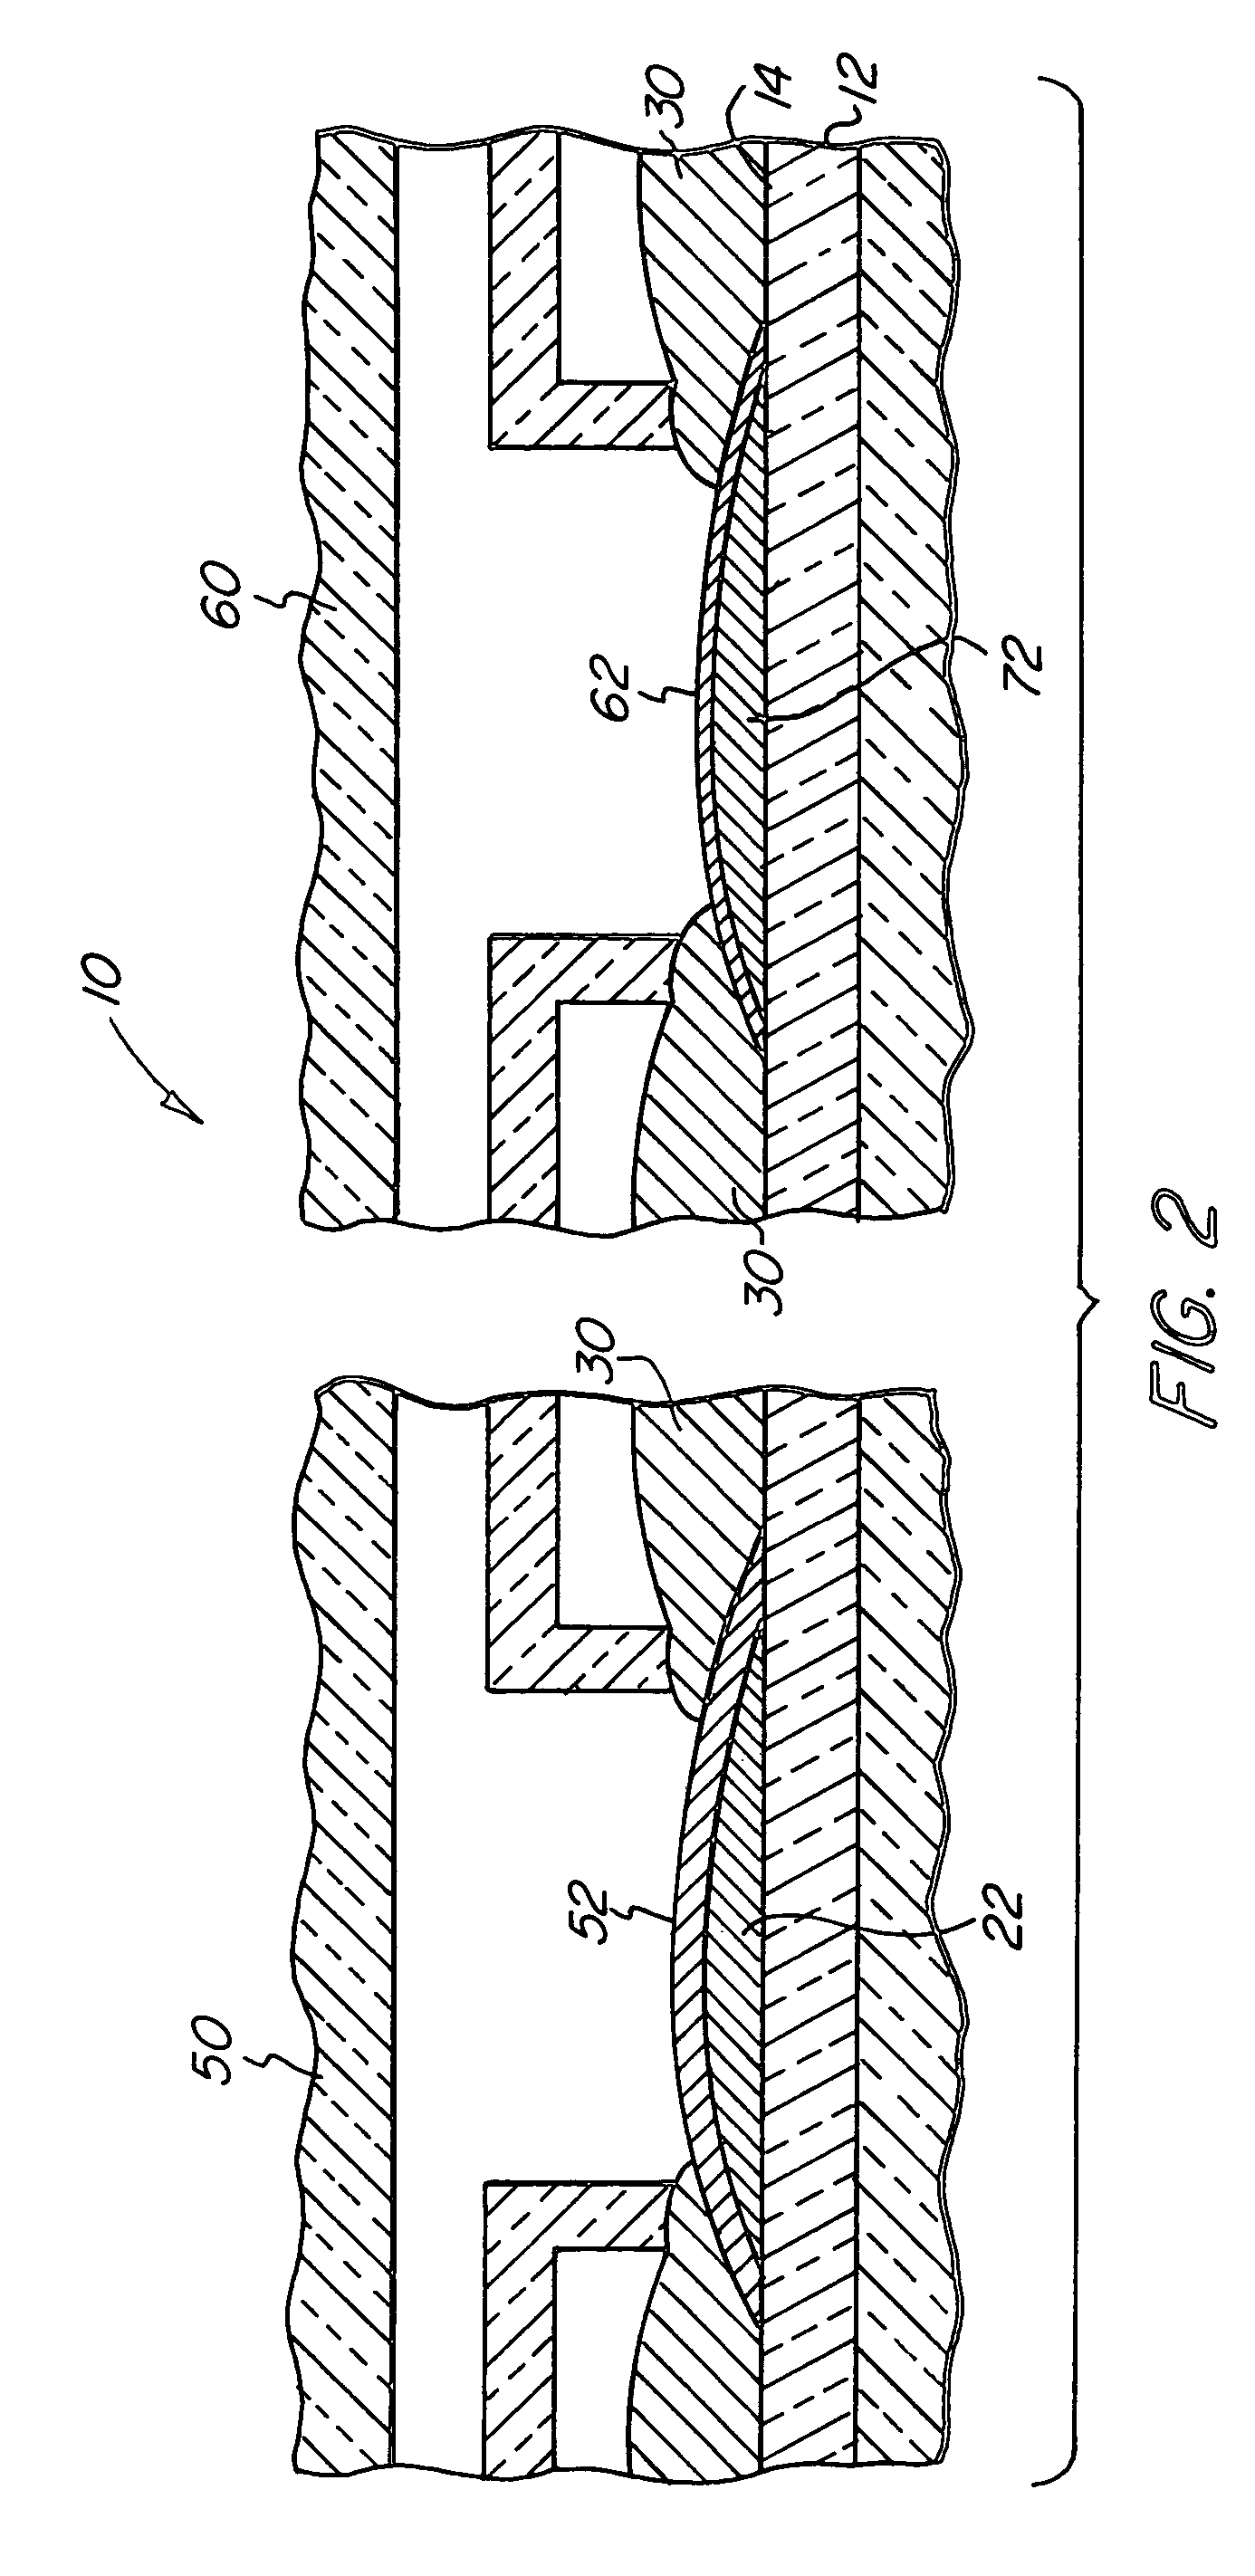 patent us7887683 - electrochemical sensor compensated for relative humidity